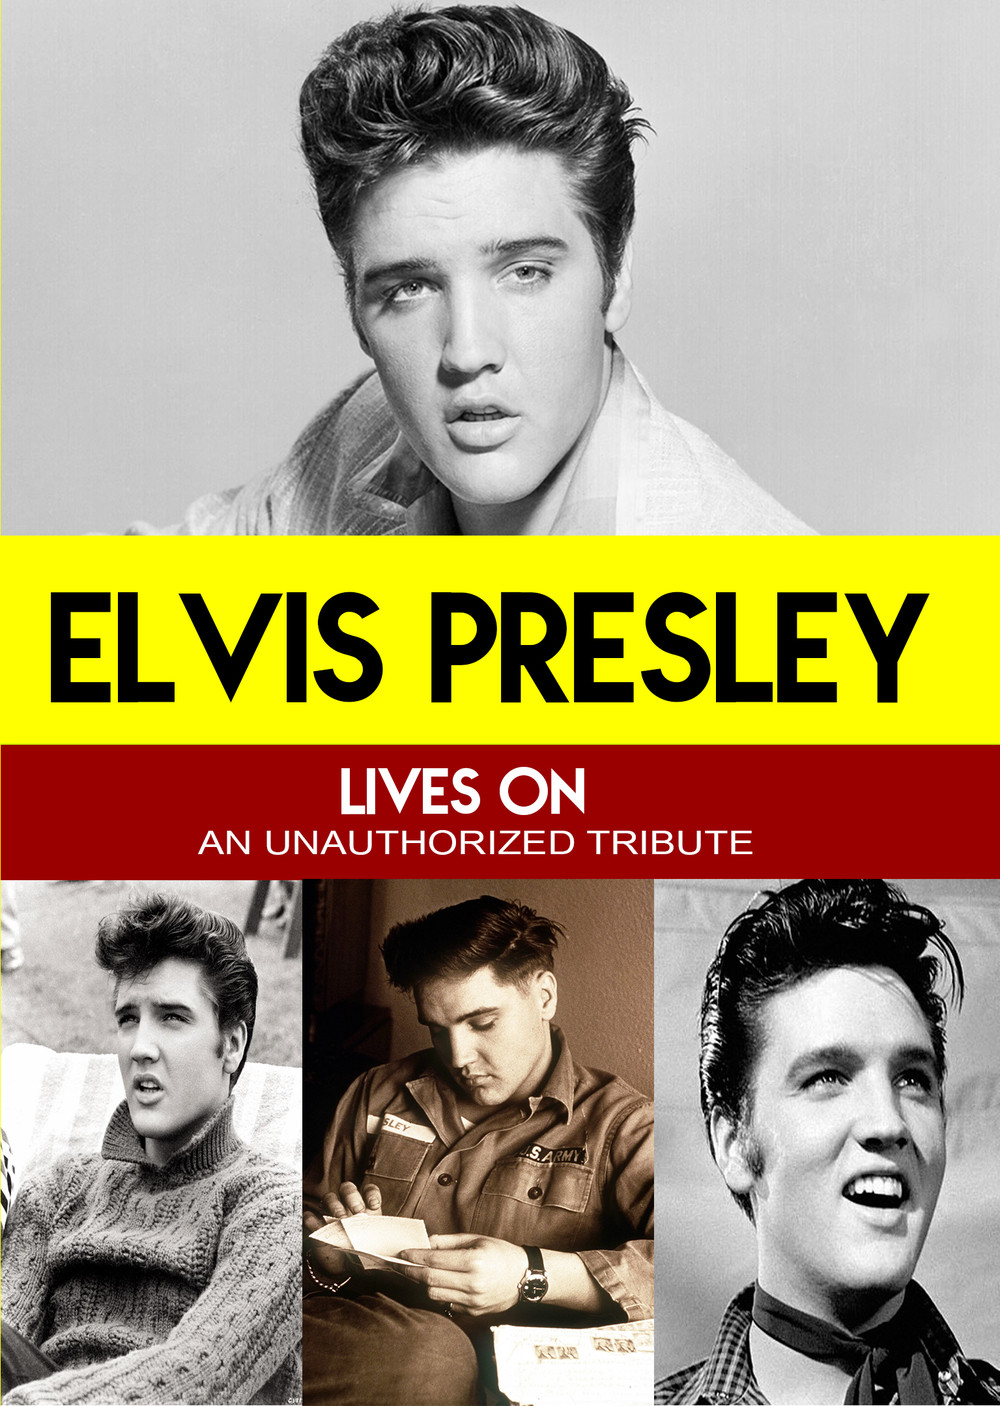 L7806 - Elvis Presley Lives On - An unauthorized Tribute